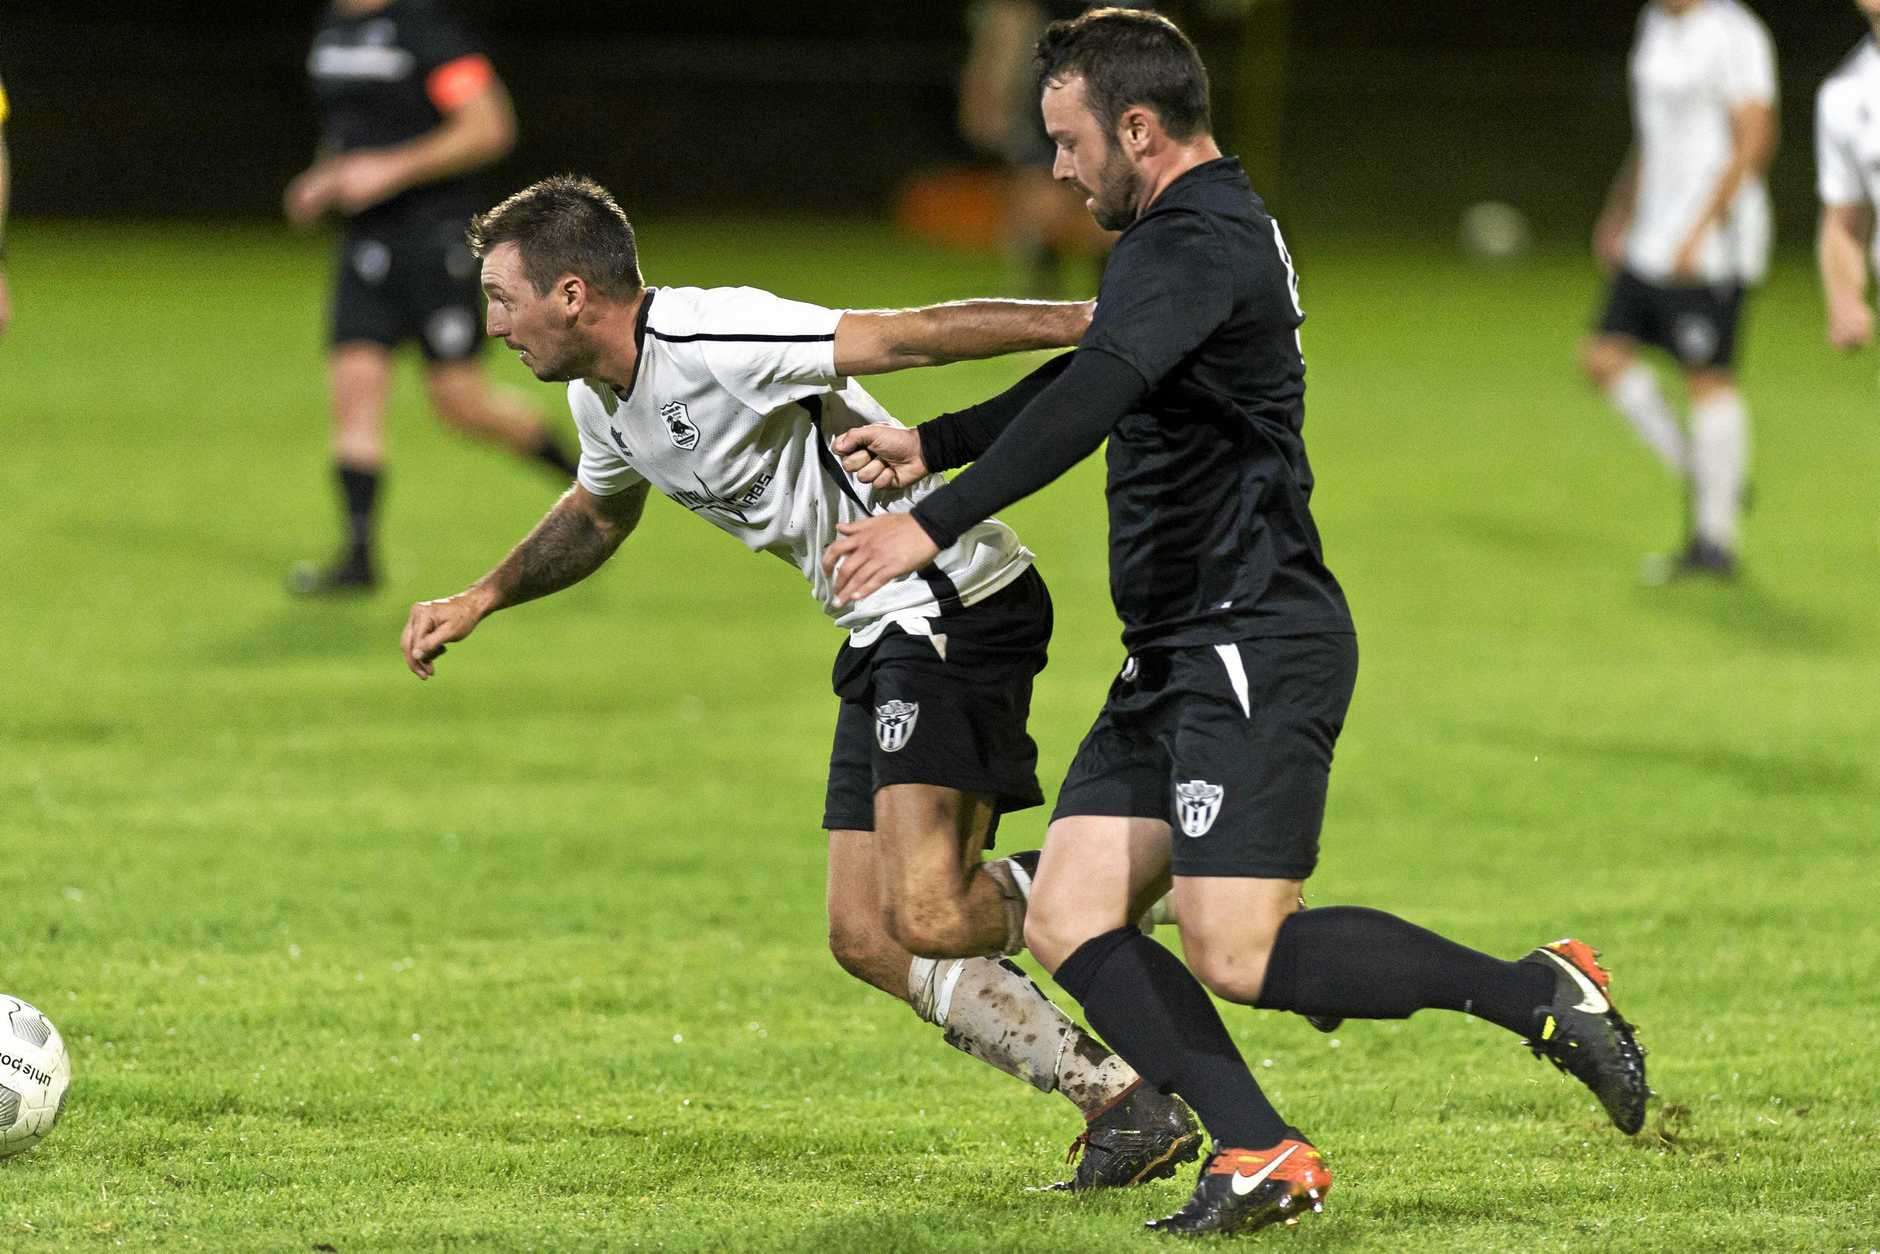 Willowburn FC's Brodie Welch (left) edges past Willowburn White opponent Nick McGauley. Welch scored four goals in his side's win over Highfields at the weekend.